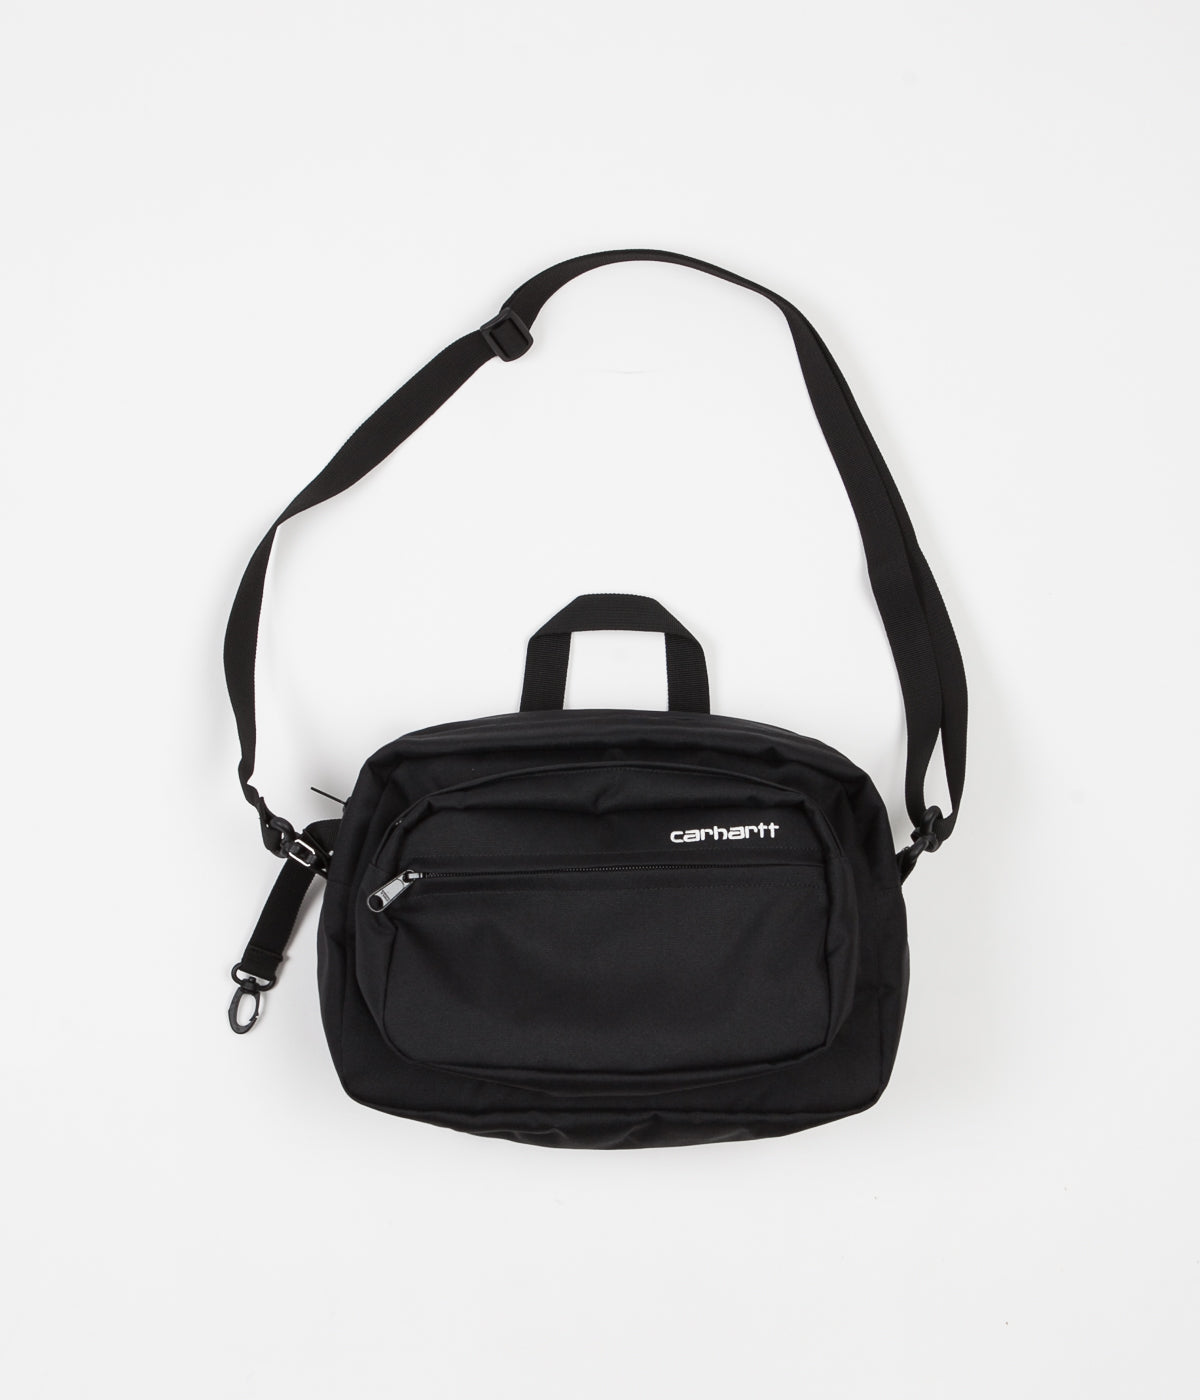 Carhartt Payton Shoulder Bag - Black / White